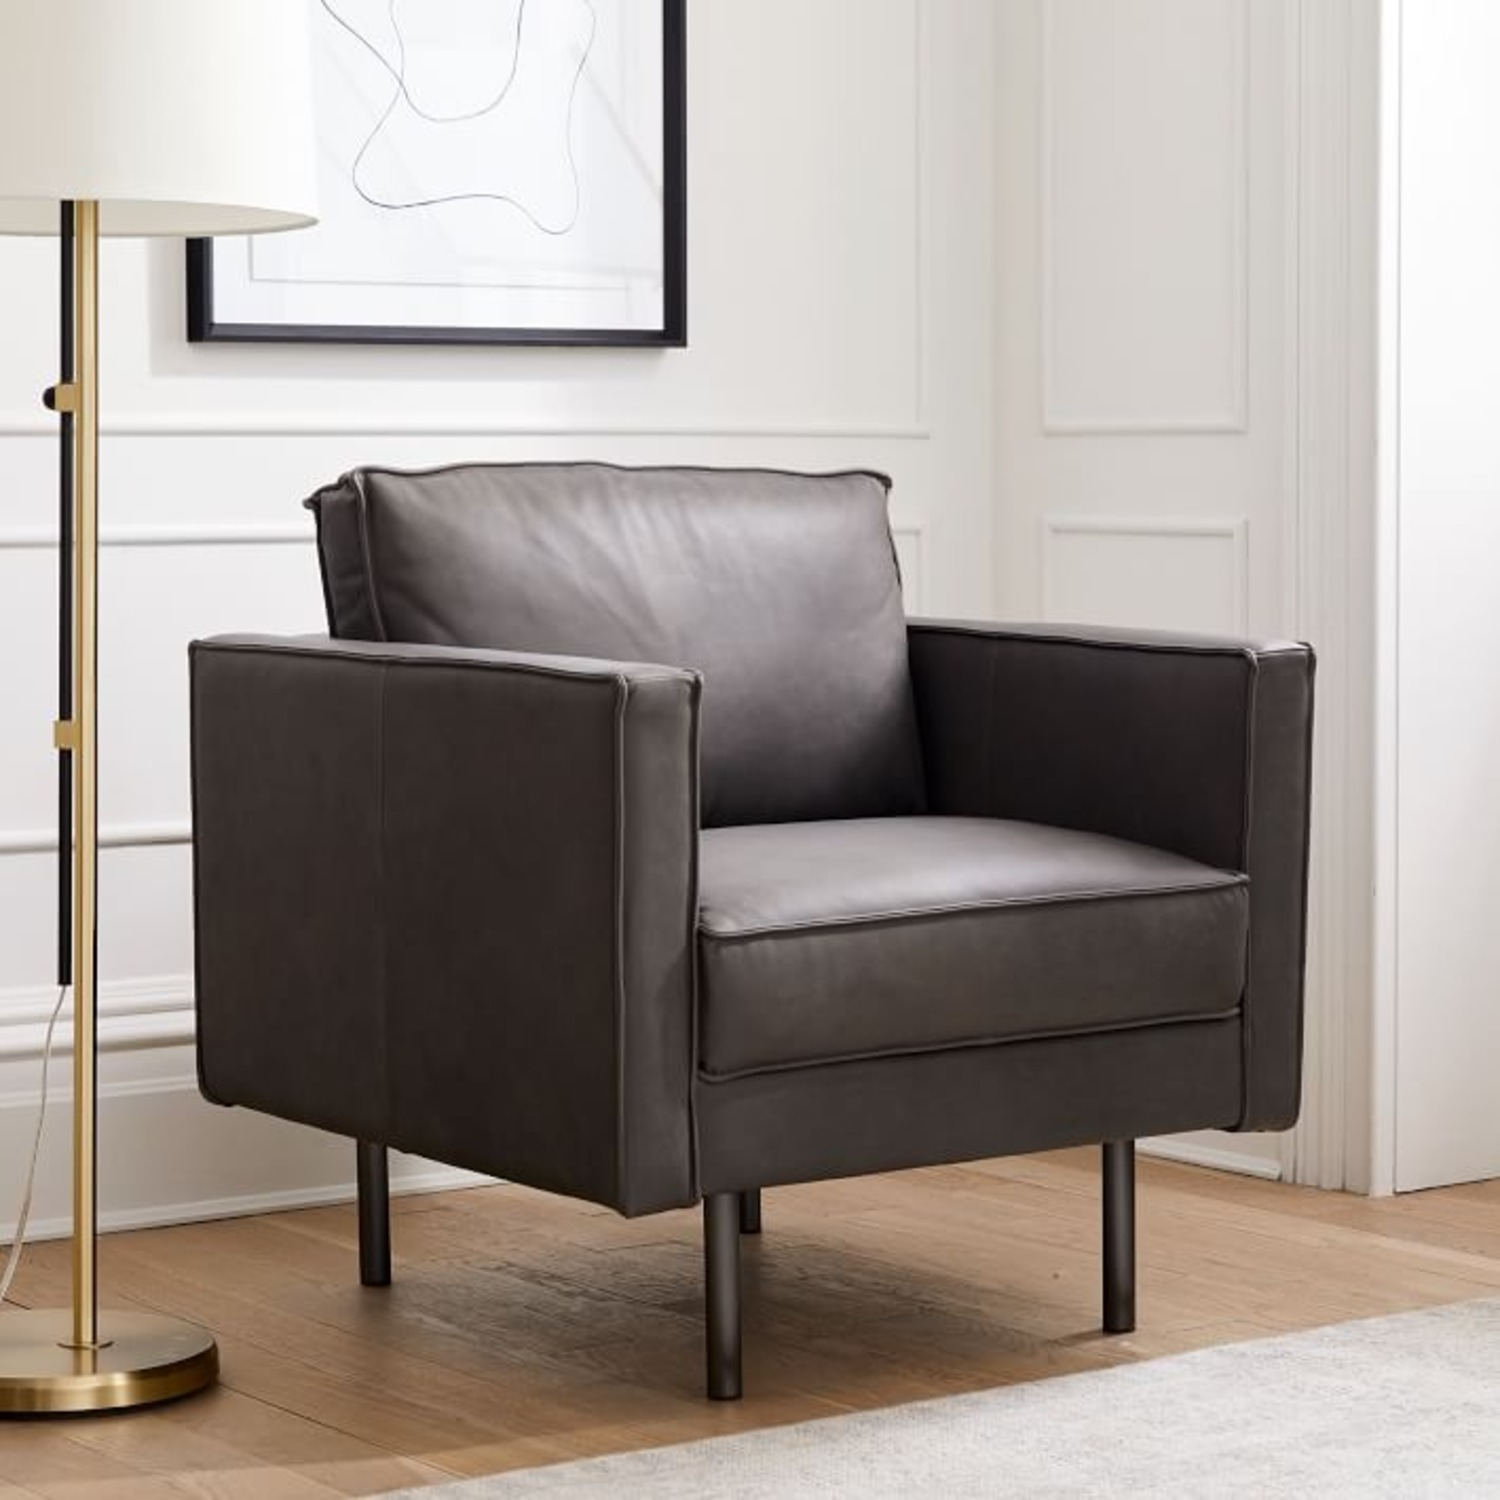 West Elm Axel Leather Armchair - image-3